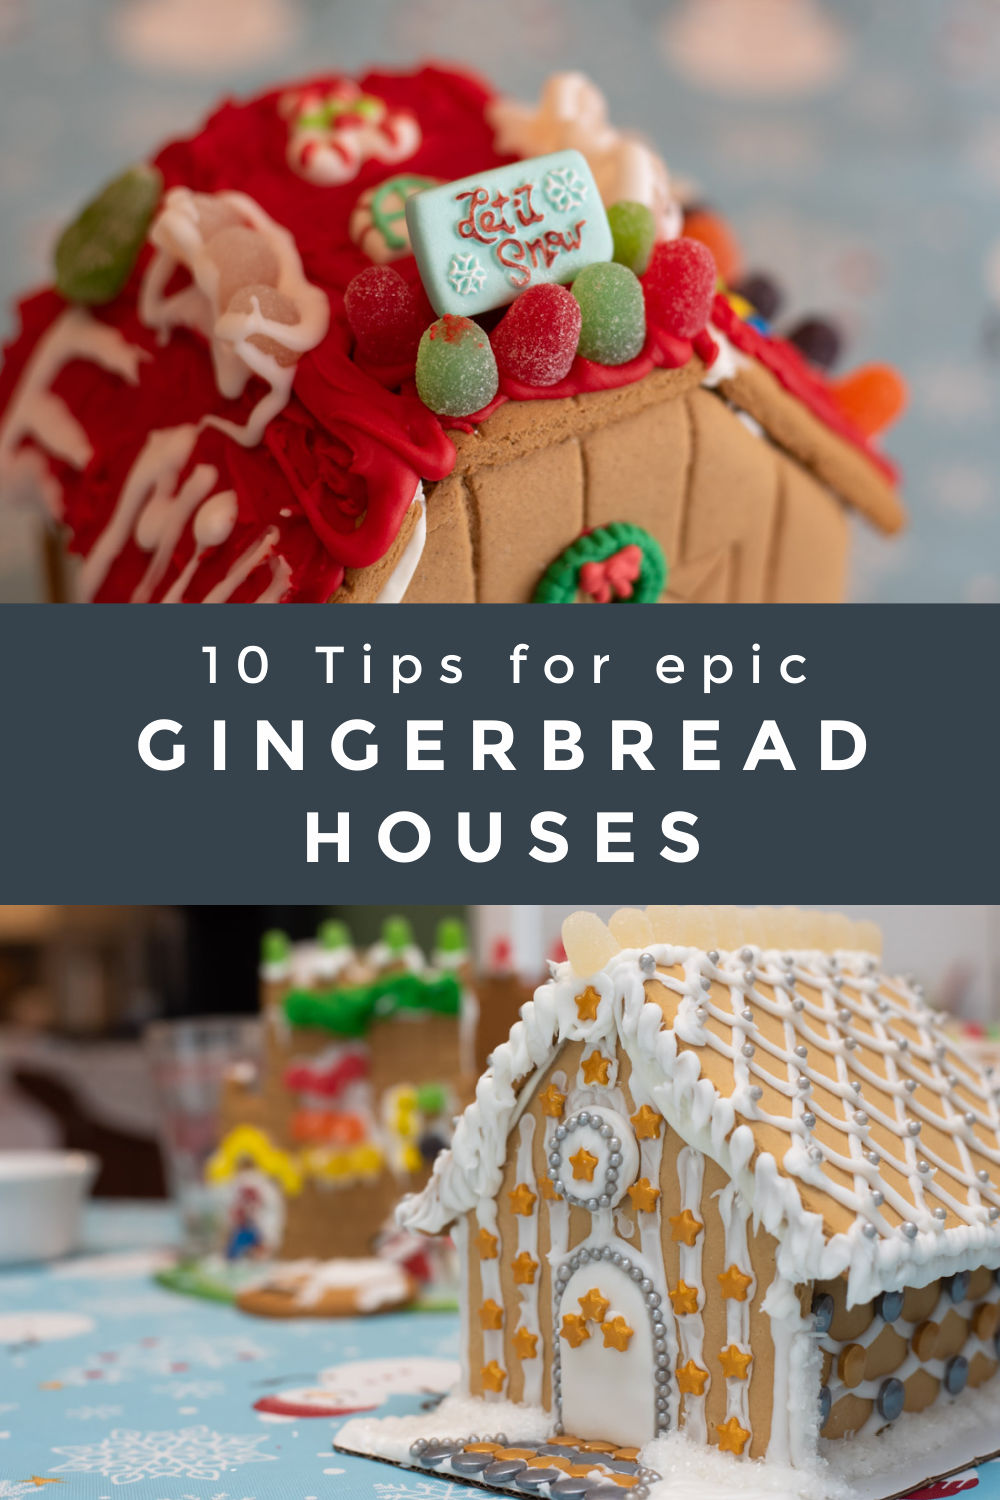 Gingerbread House making tips